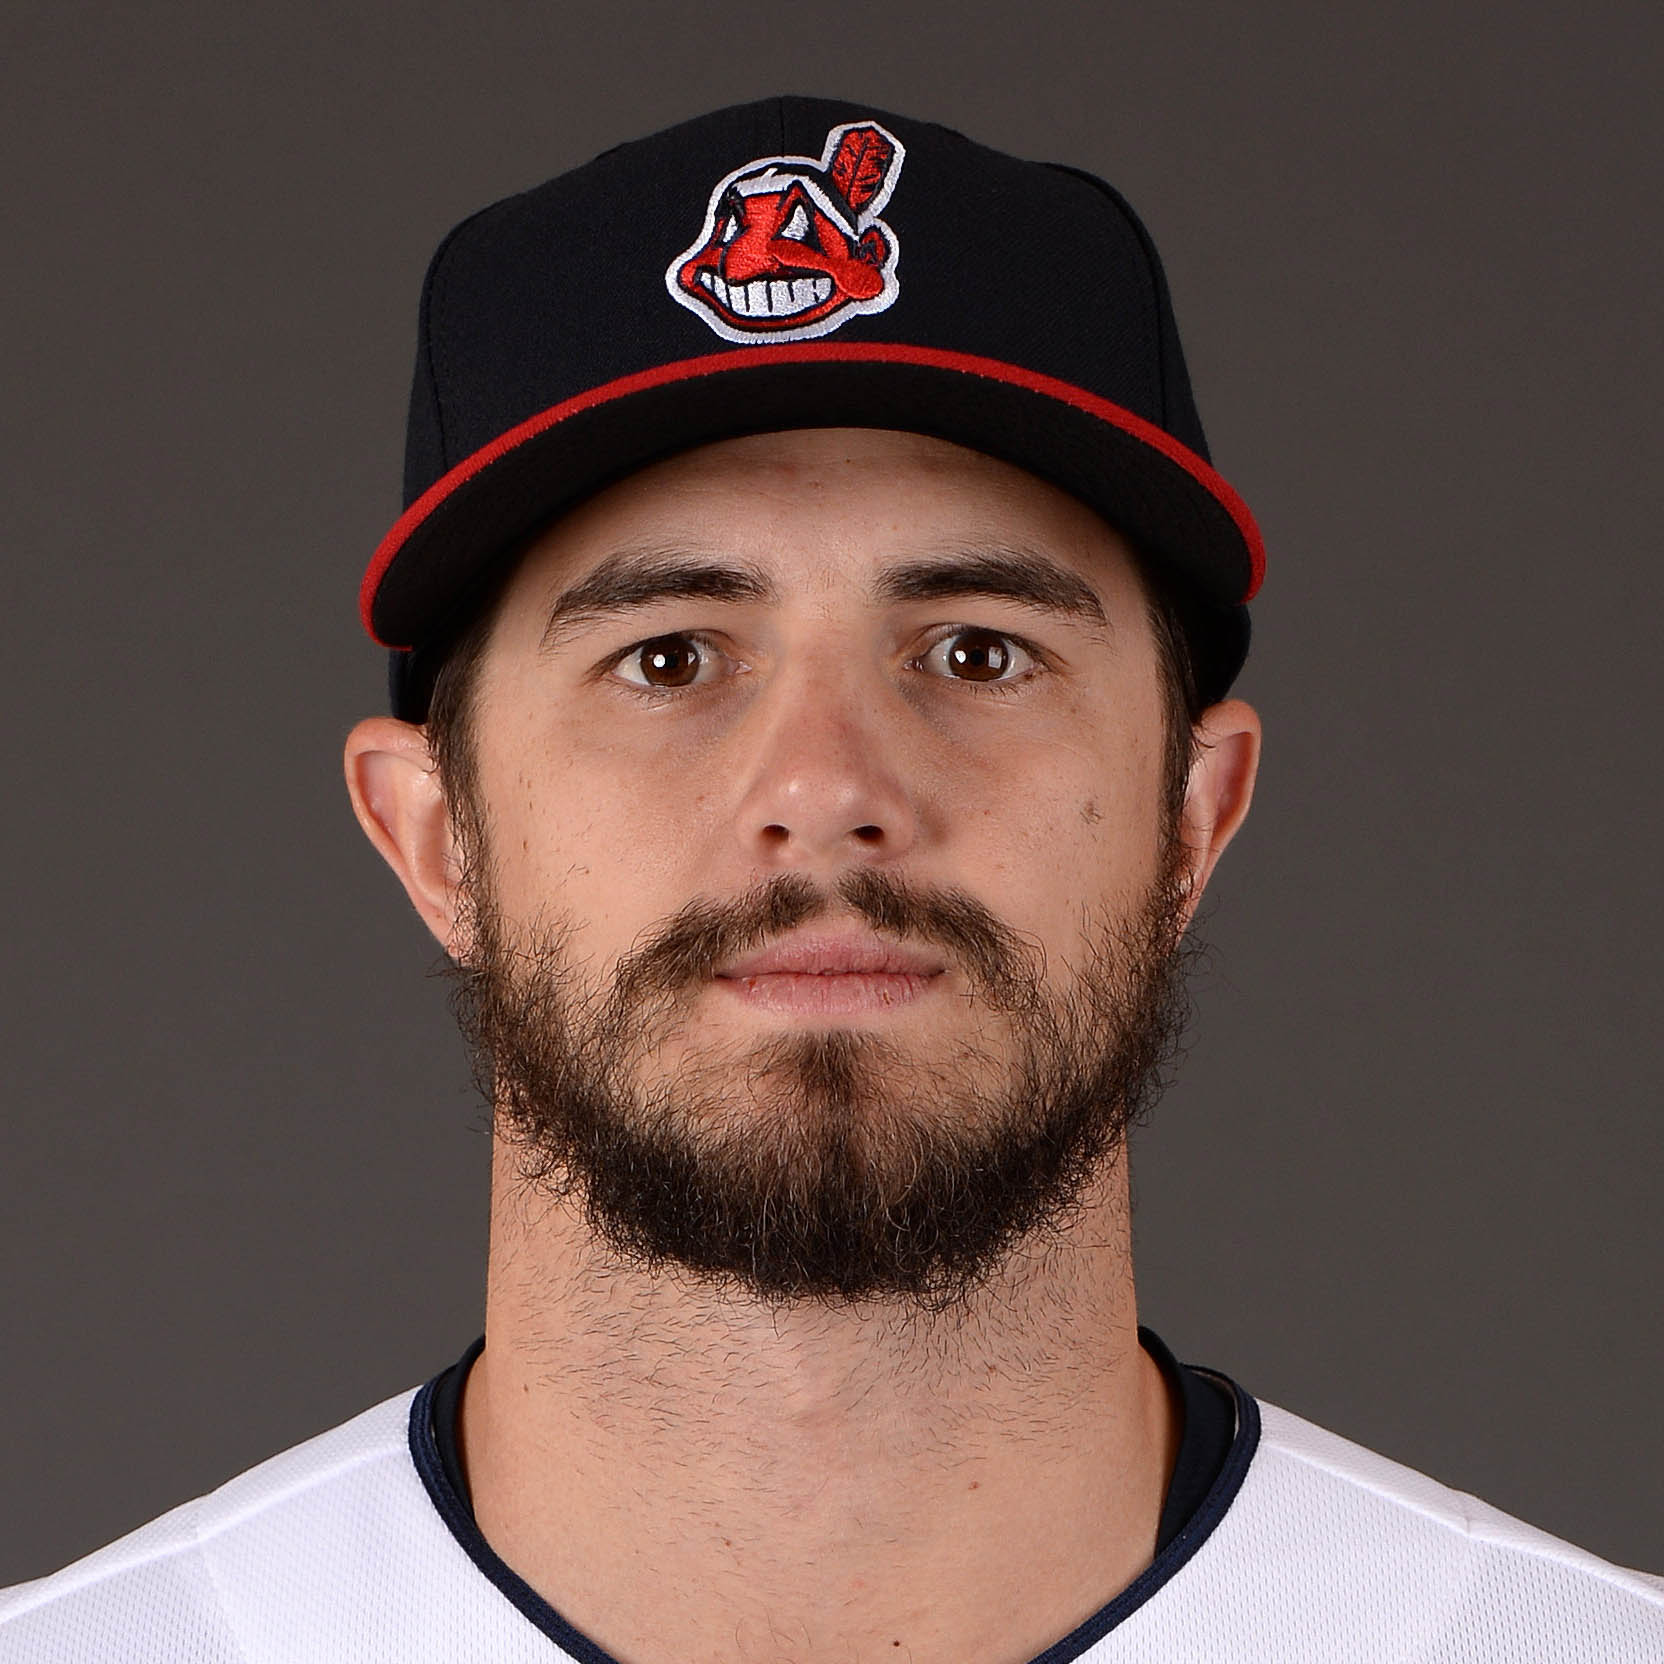 Ryan Merritt (L) Headshot